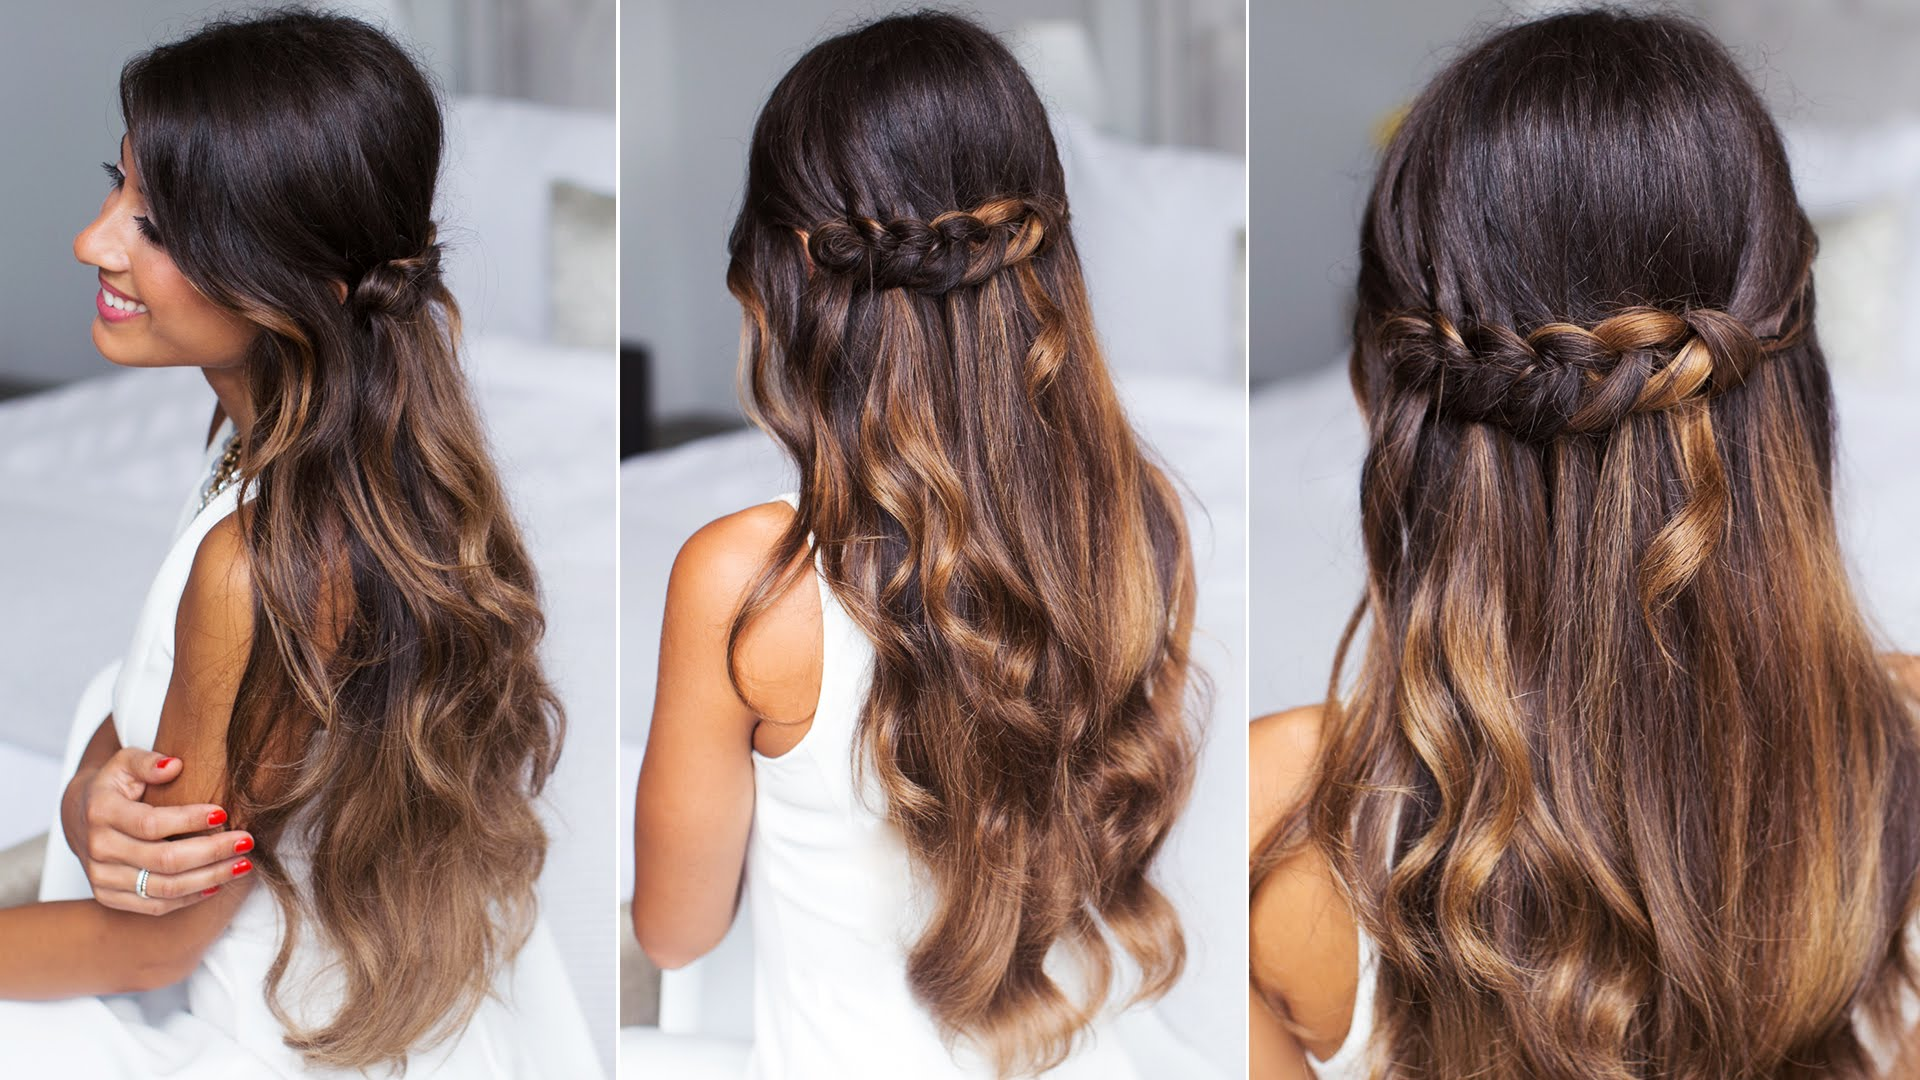 5 Braided Hairstyles for Your First Date!